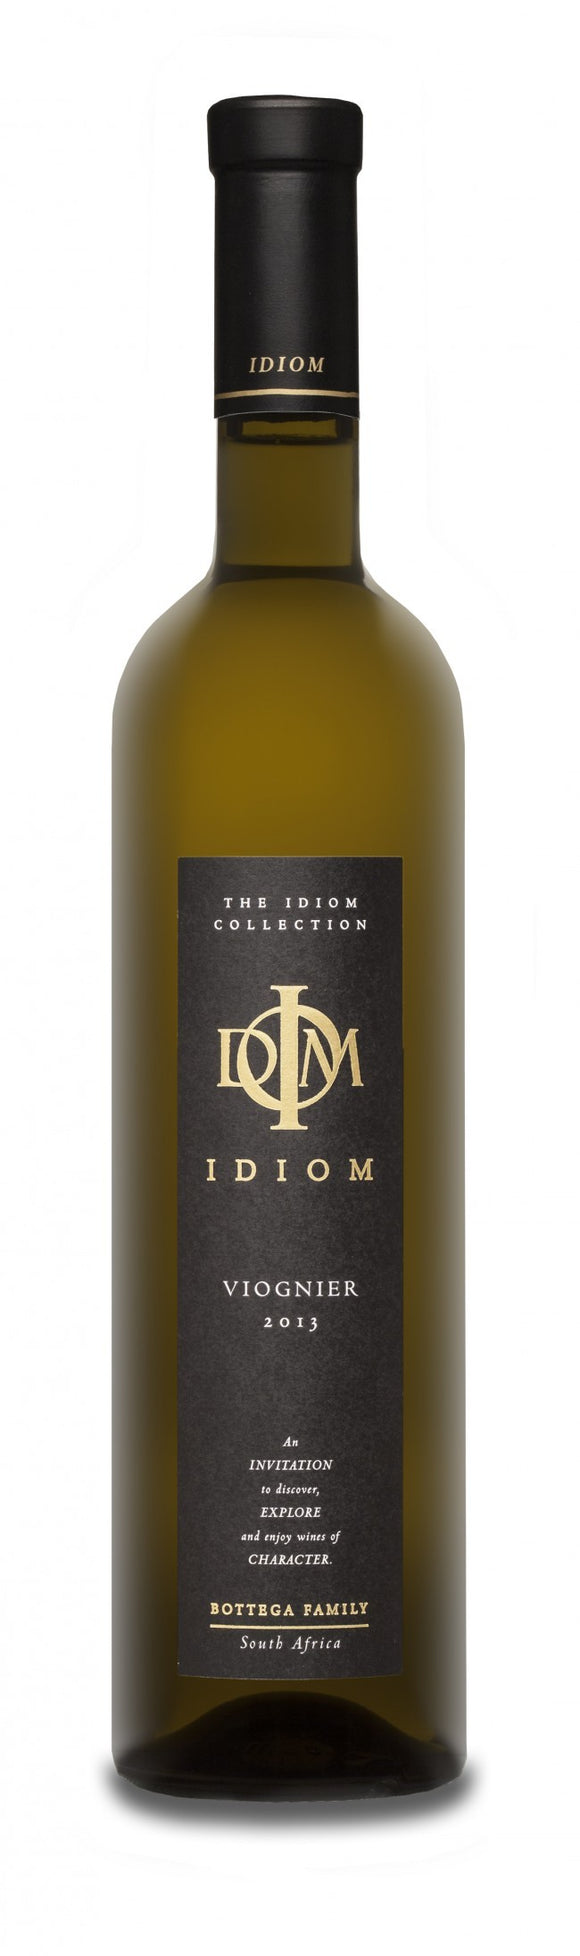 Idiom Viognier, Stellenbosch, South Africa